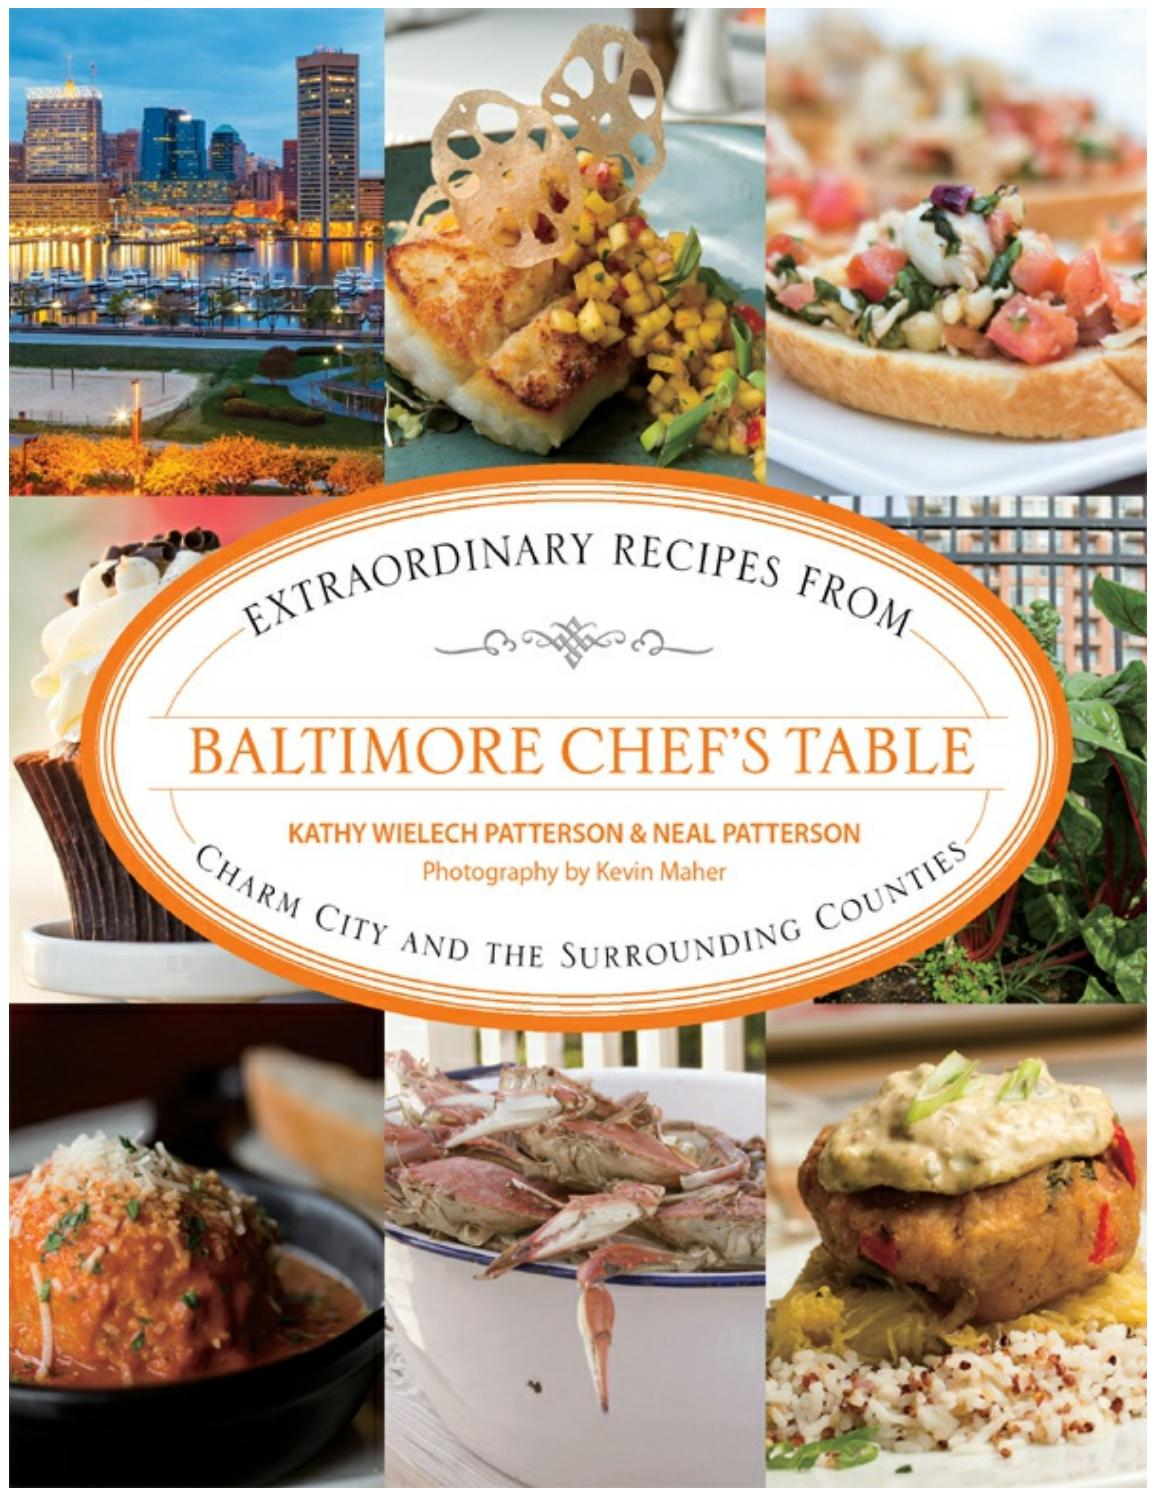 Chefs Table Baltimore Extraordinary Recipes By Manoel De Oliveira Bay Area Meat Csa In Transition Chicken Issuu